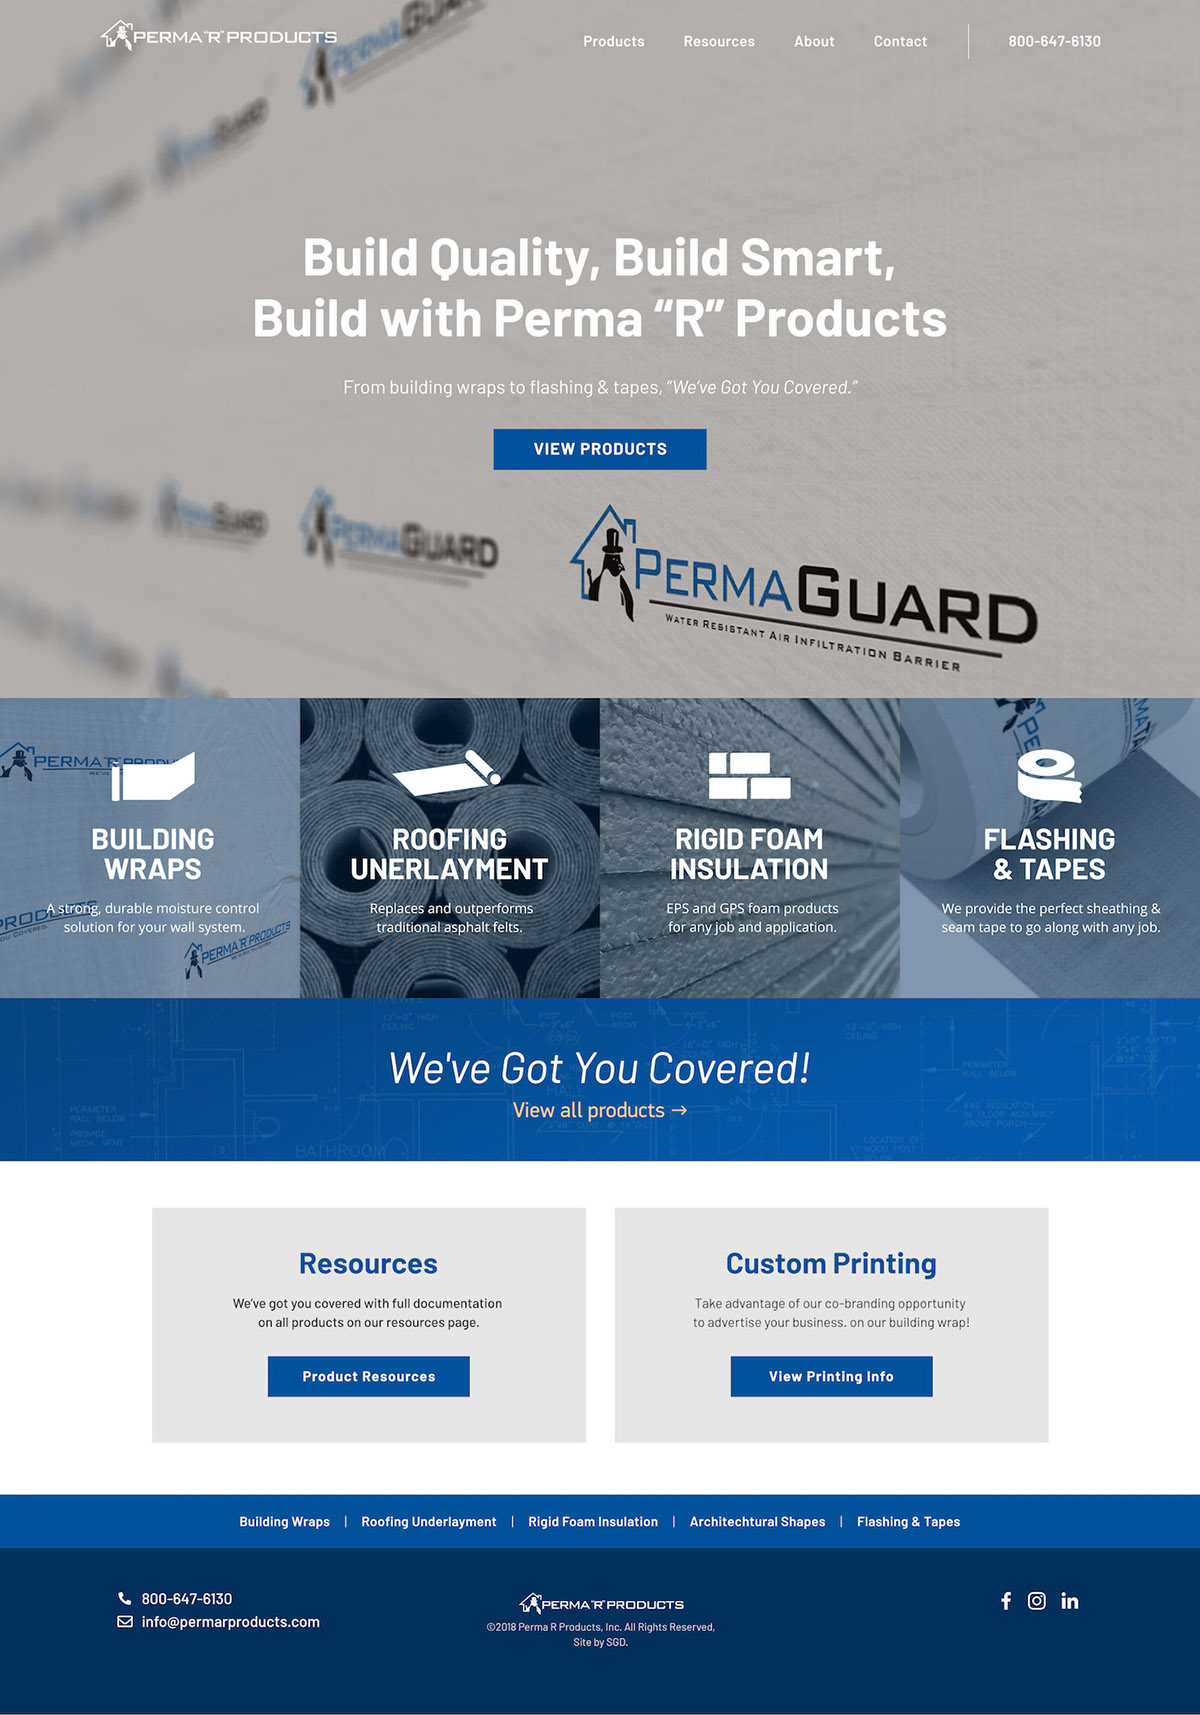 Perma R Products